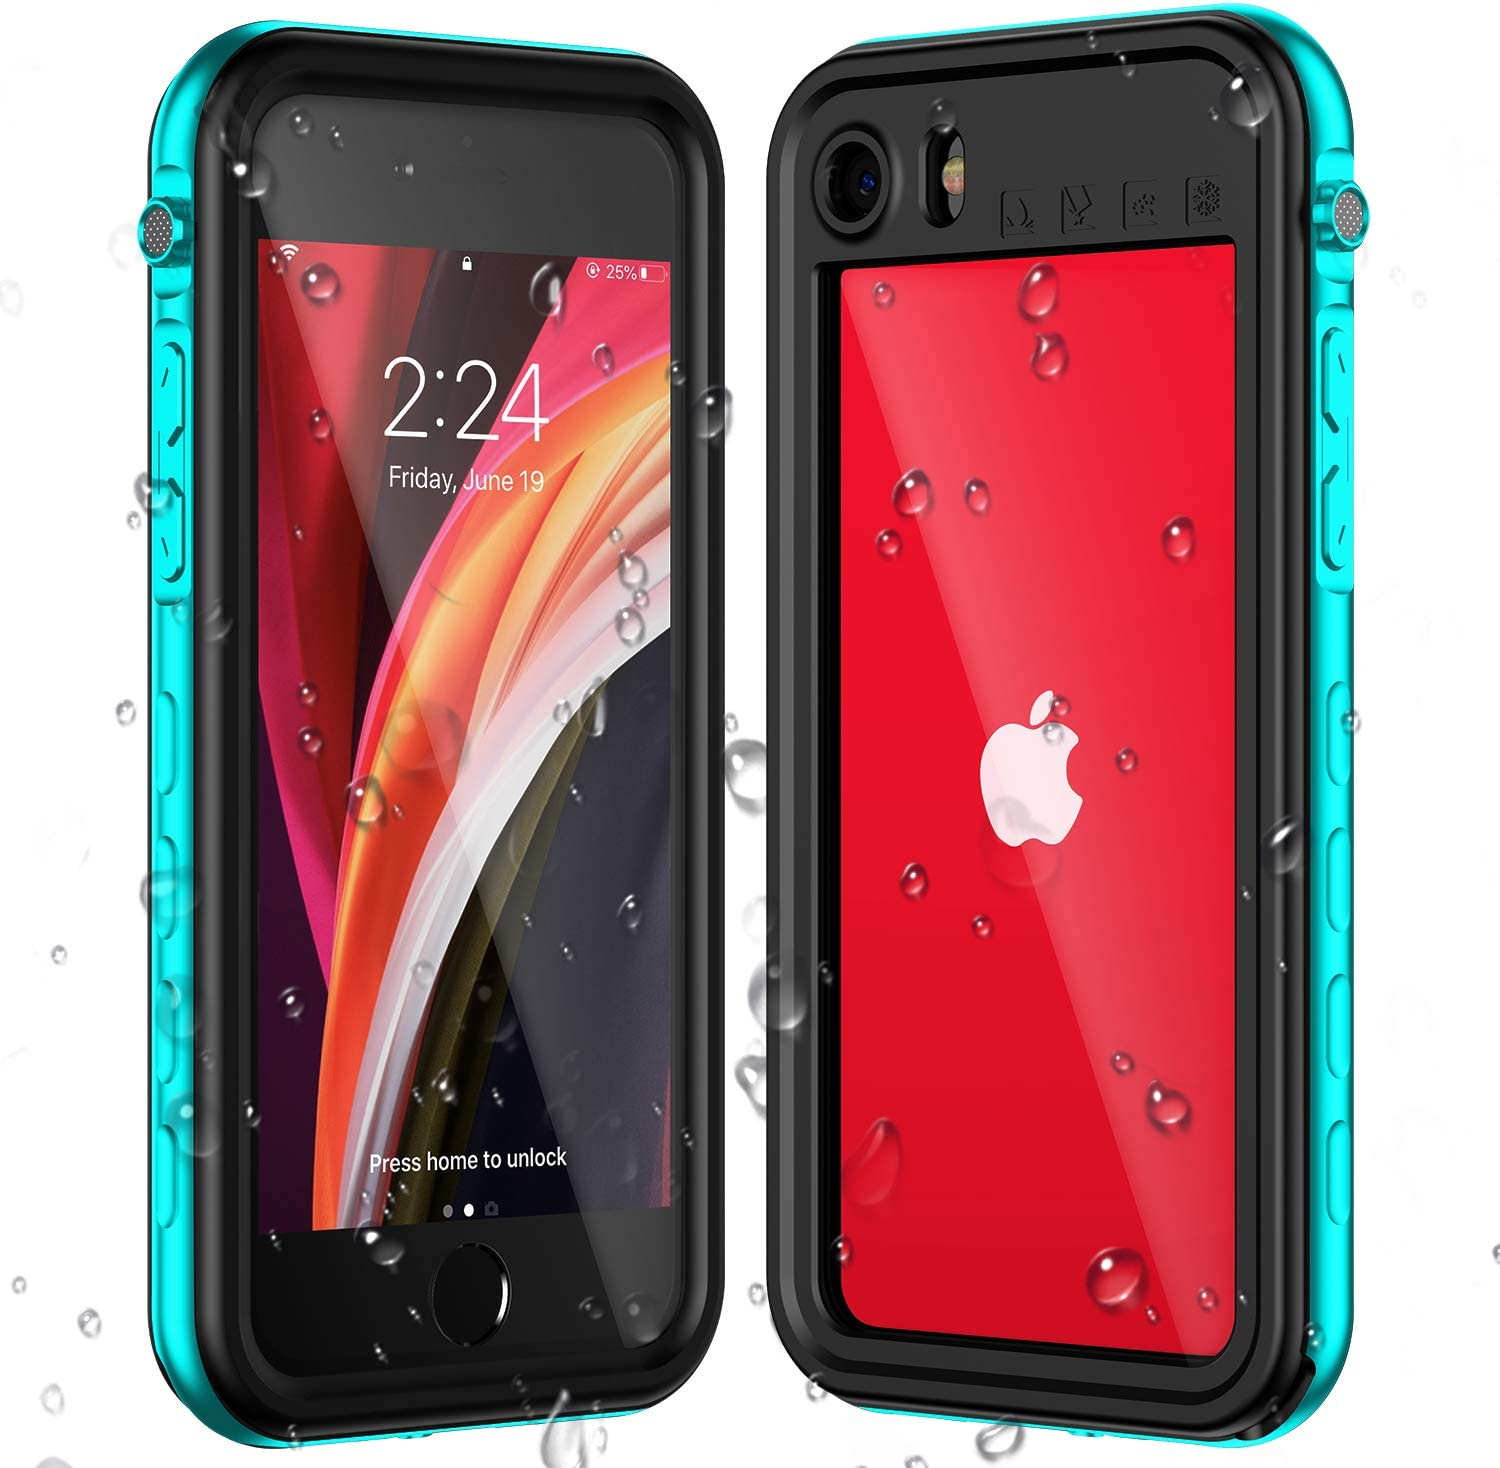 Baronage iPhone SE 2020 Waterproof Case, iPhone 7/8 Waterproof Case, Clear Sound Protective Case with Built-in Screen Protector, Waterproof Shockproof Dustproof for iPhone SE 2020/8/7 (Grass Blue)